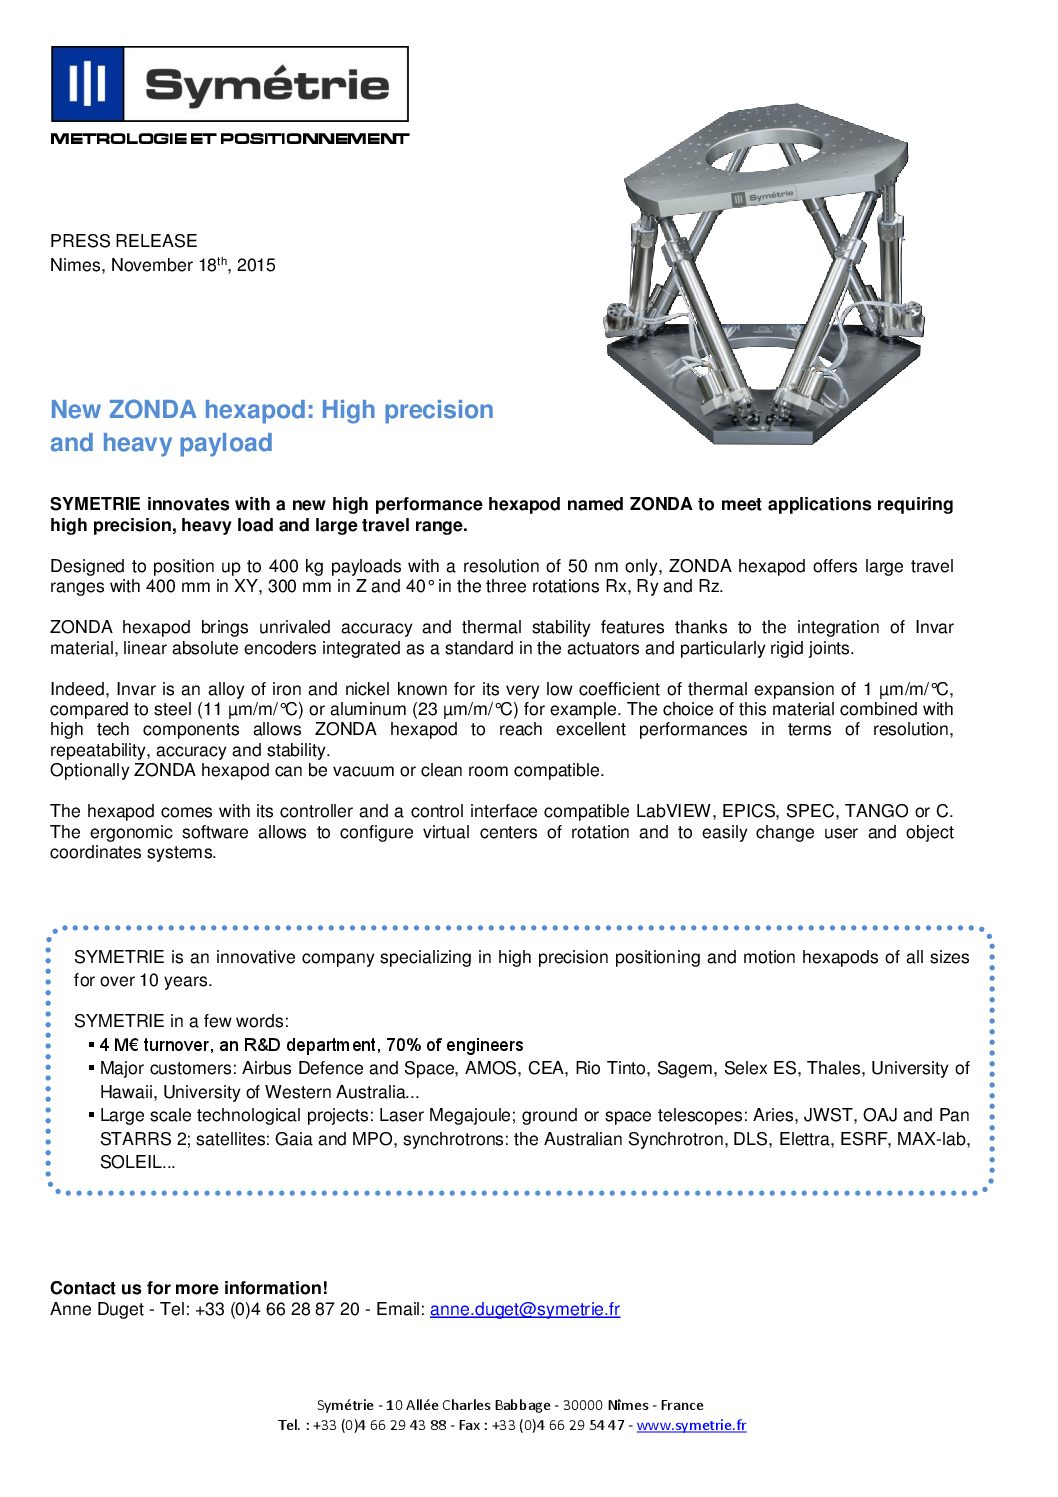 New ZONDA hexapod  High precision and heavy payload - November 2015 -  Symetrie 8623a3fb6747